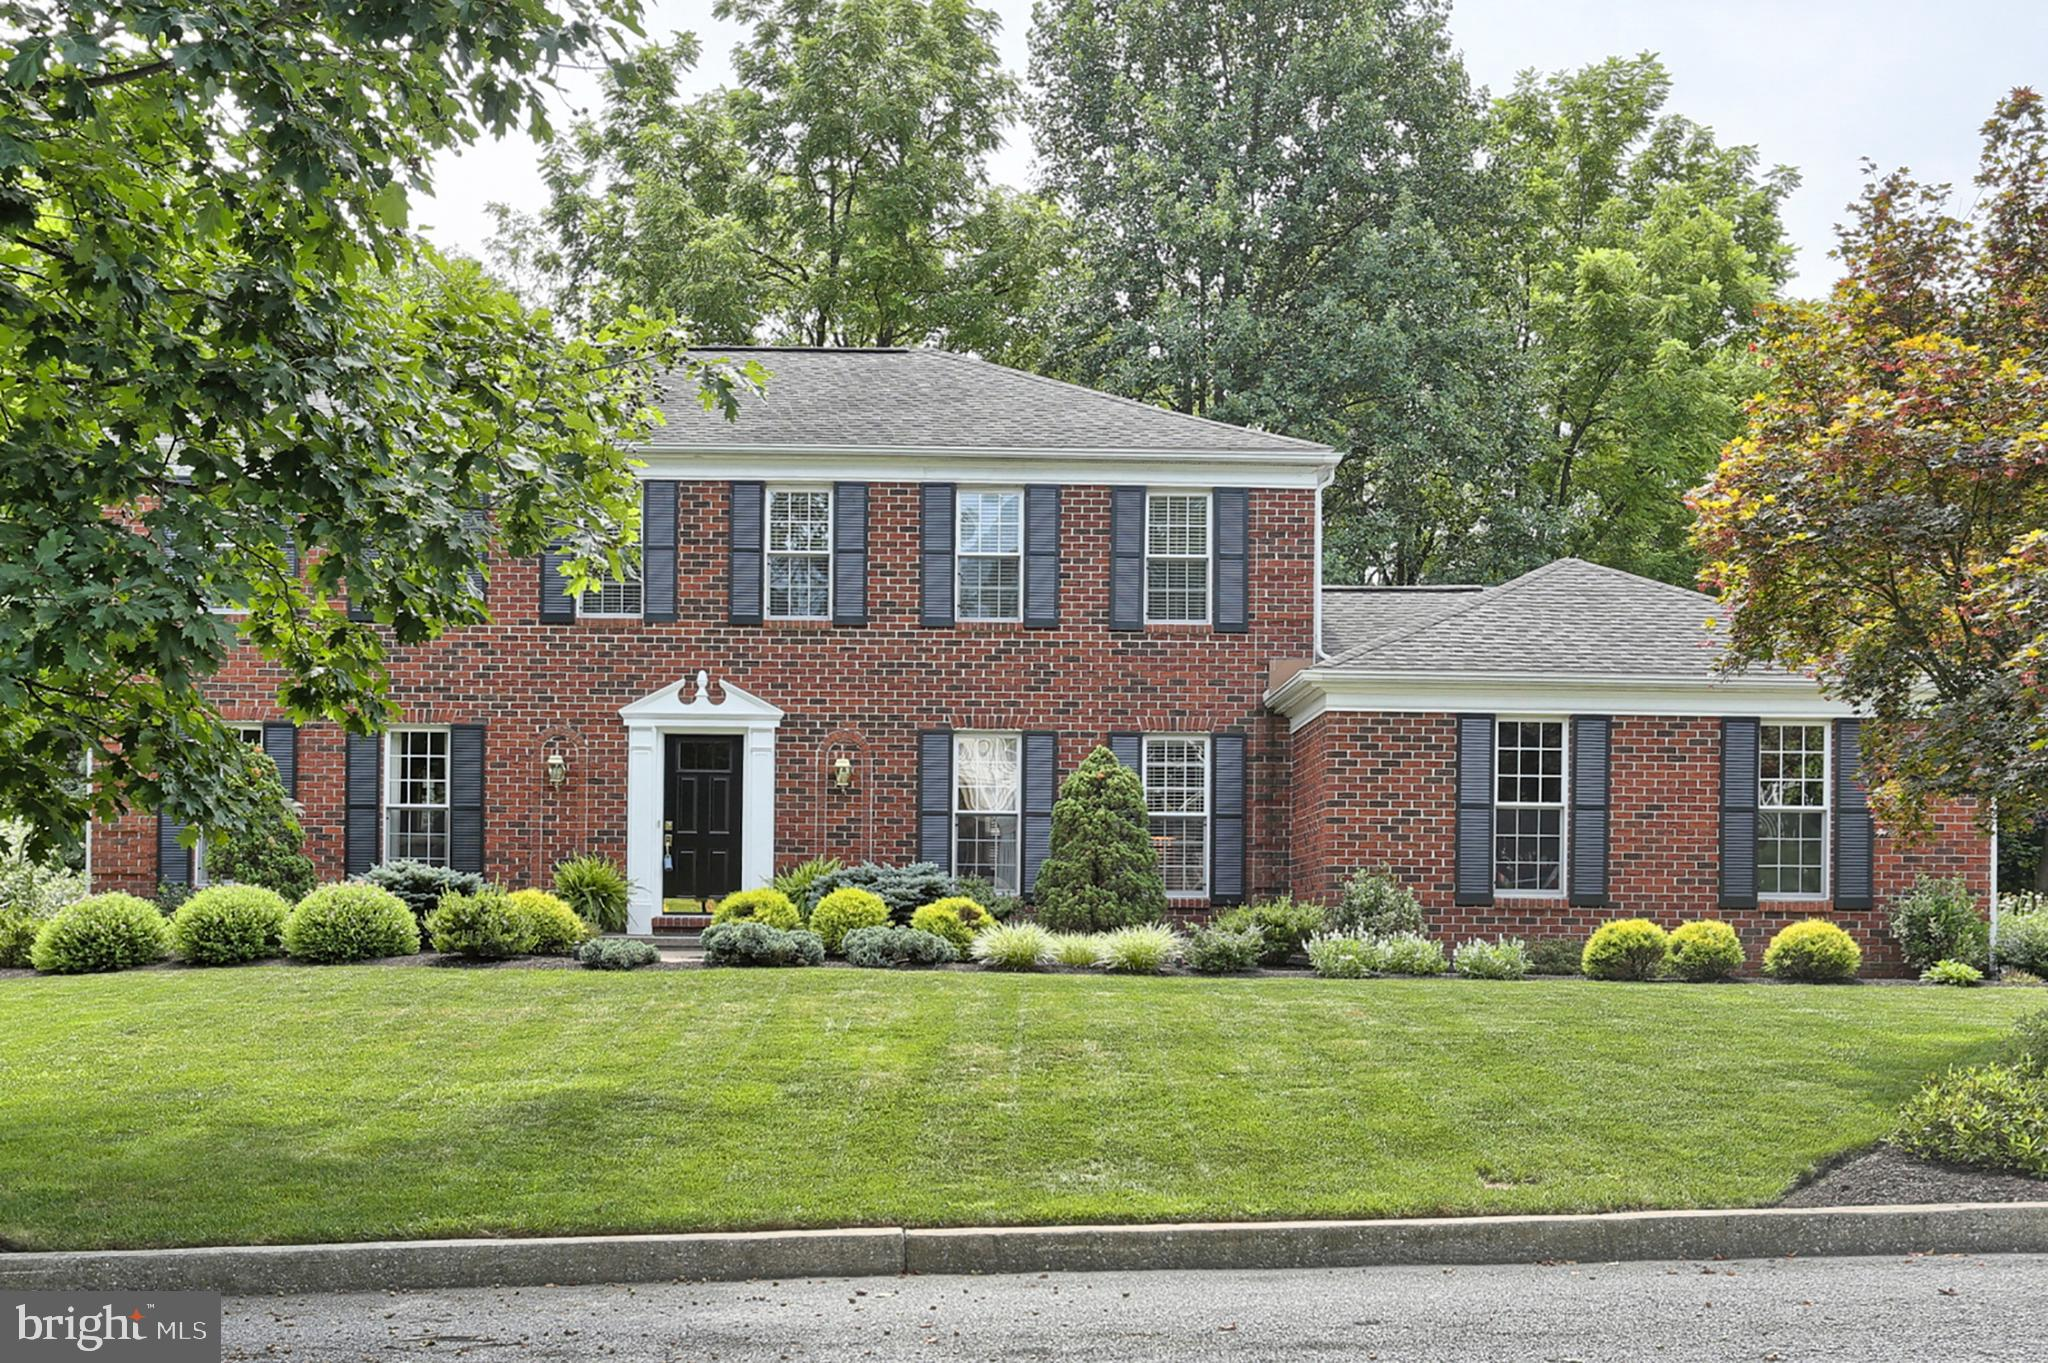 921 CARRIAGE HOUSE COURT, HERSHEY, PA 17033